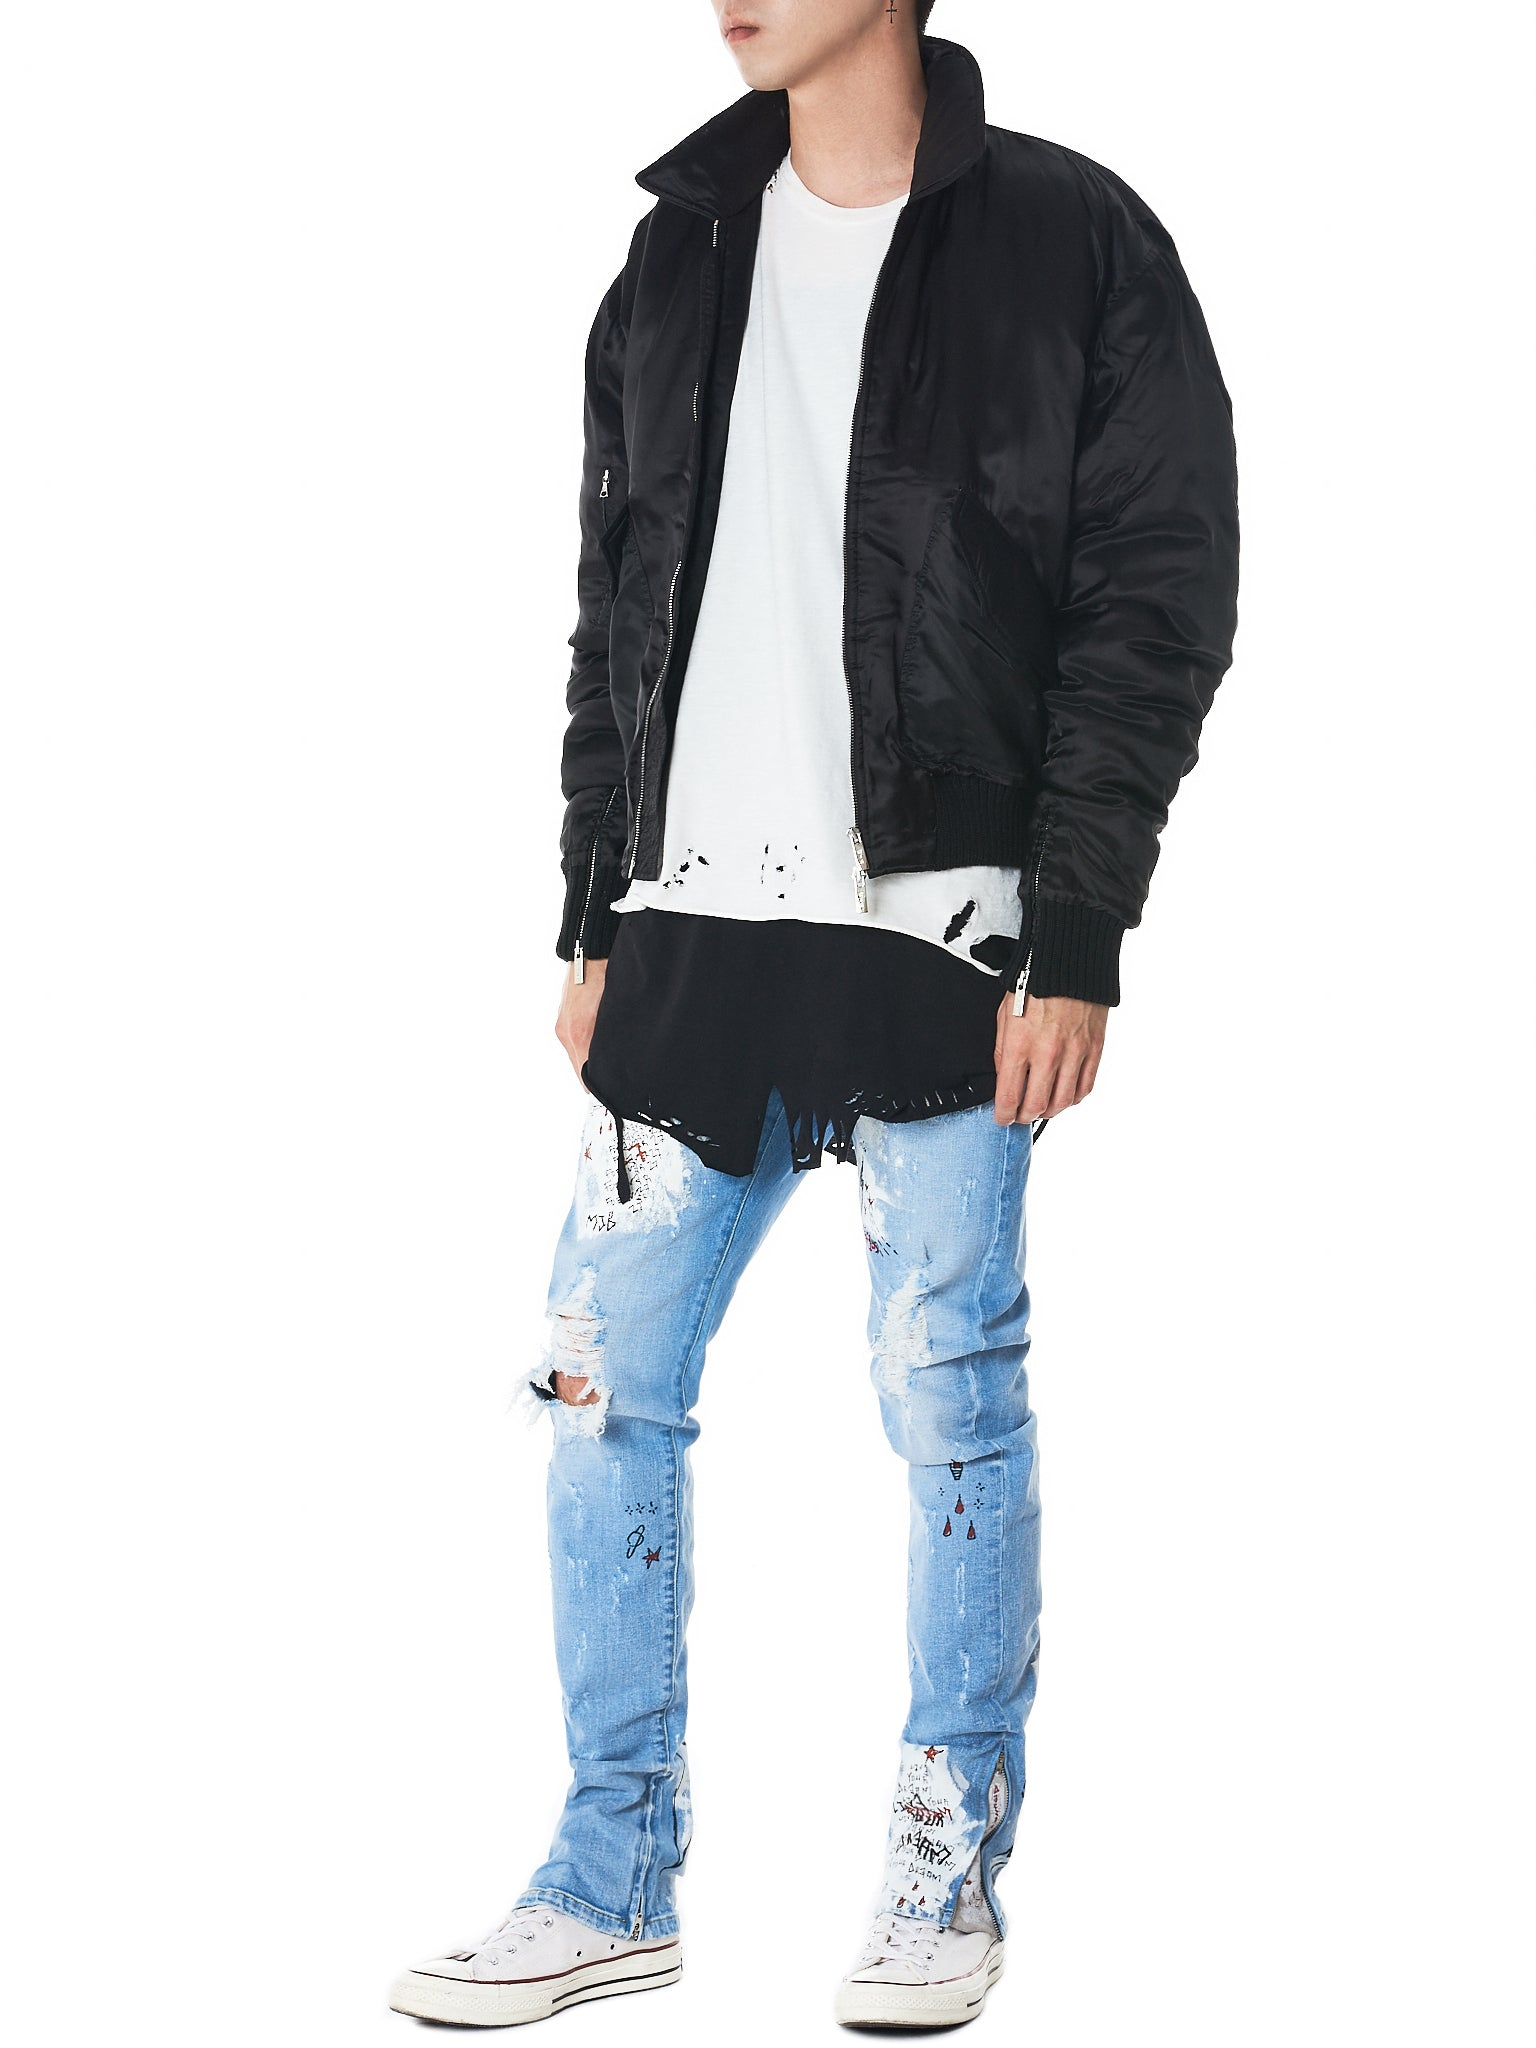 Marc Jacques Burton- HLorenzo puffer bomber jacket full view